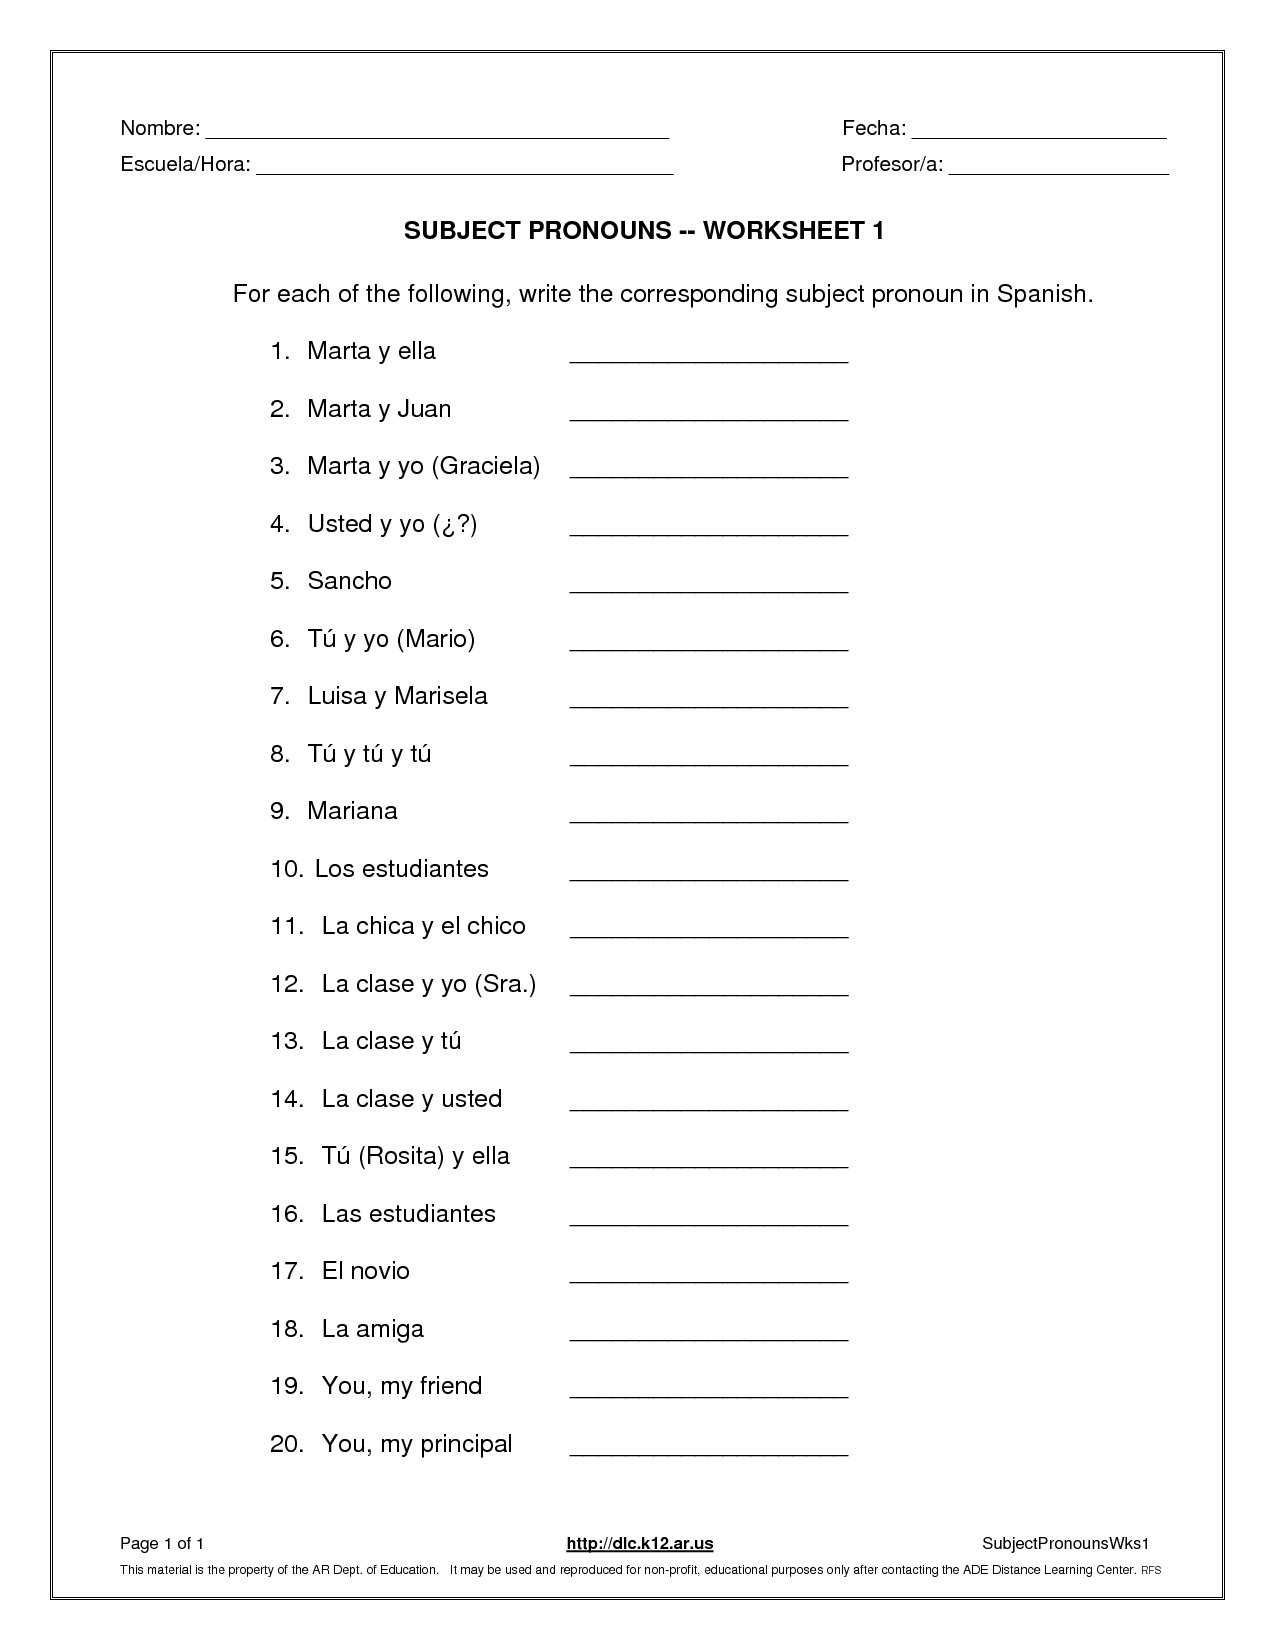 Subject And Object Pronouns Worksheet Subject Pronouns Worksheet 1 Inside Subject Pronouns In Spanish Worksheet Answers